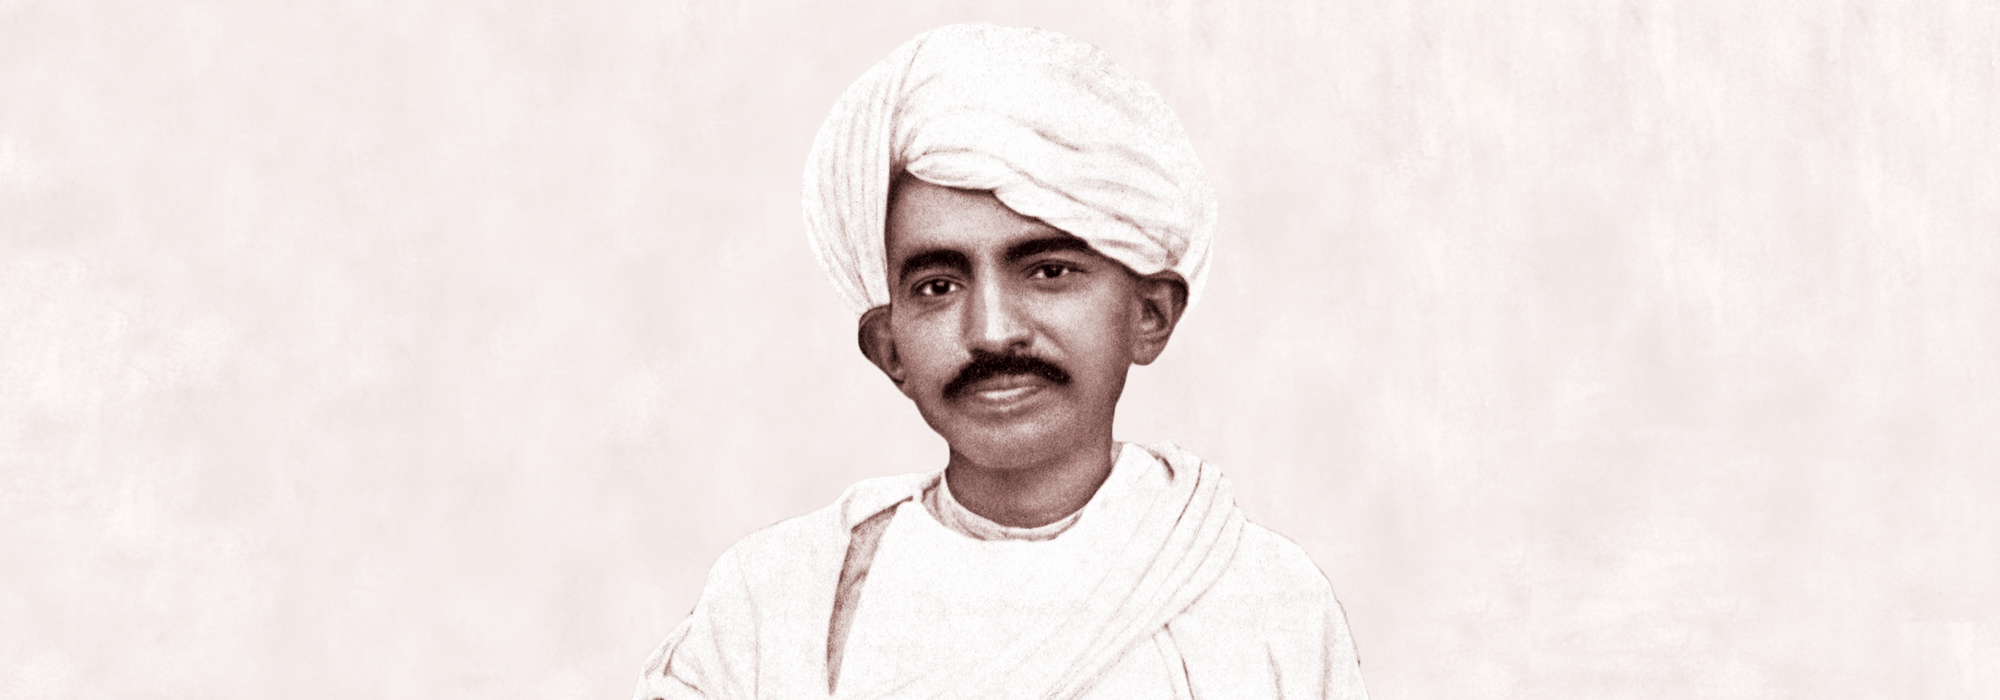 Gandhi at age 46 back in India